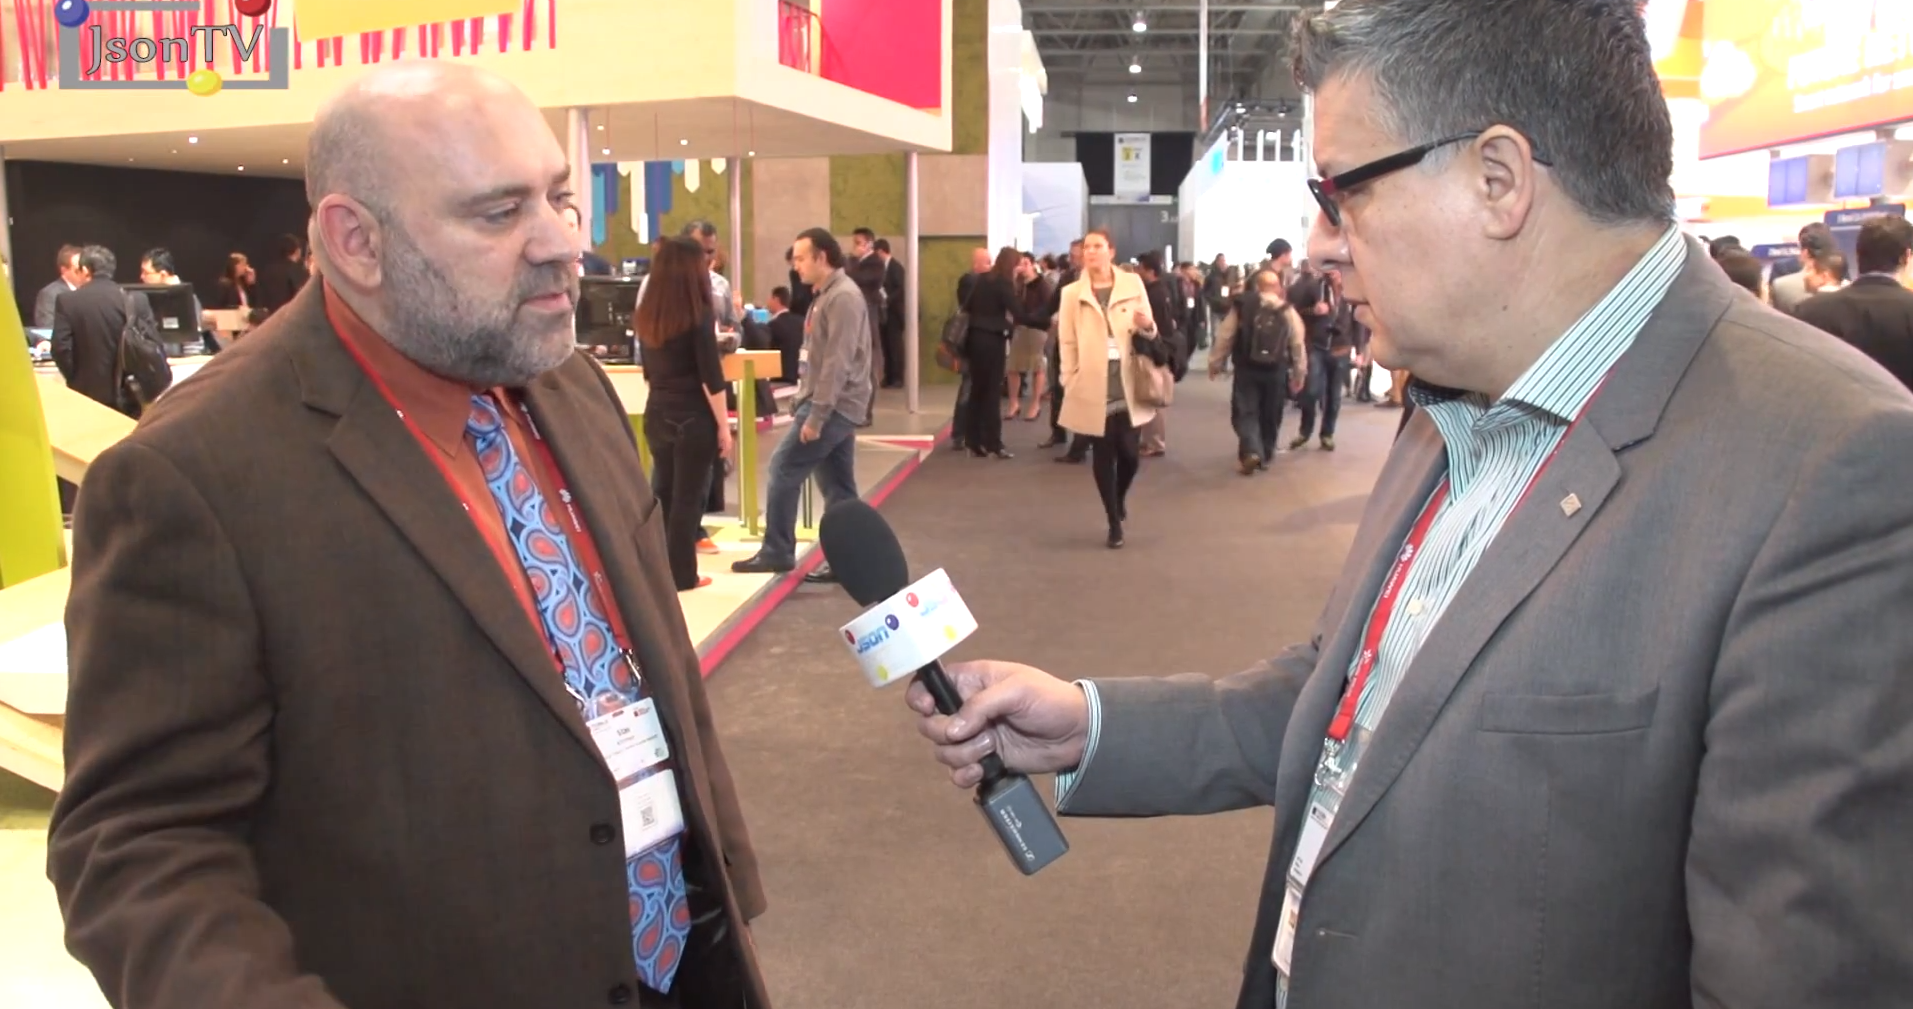 Mobile World Congress 2014, Stas Khirman, Deutsche Telekom. Облачные сервисы для SMB